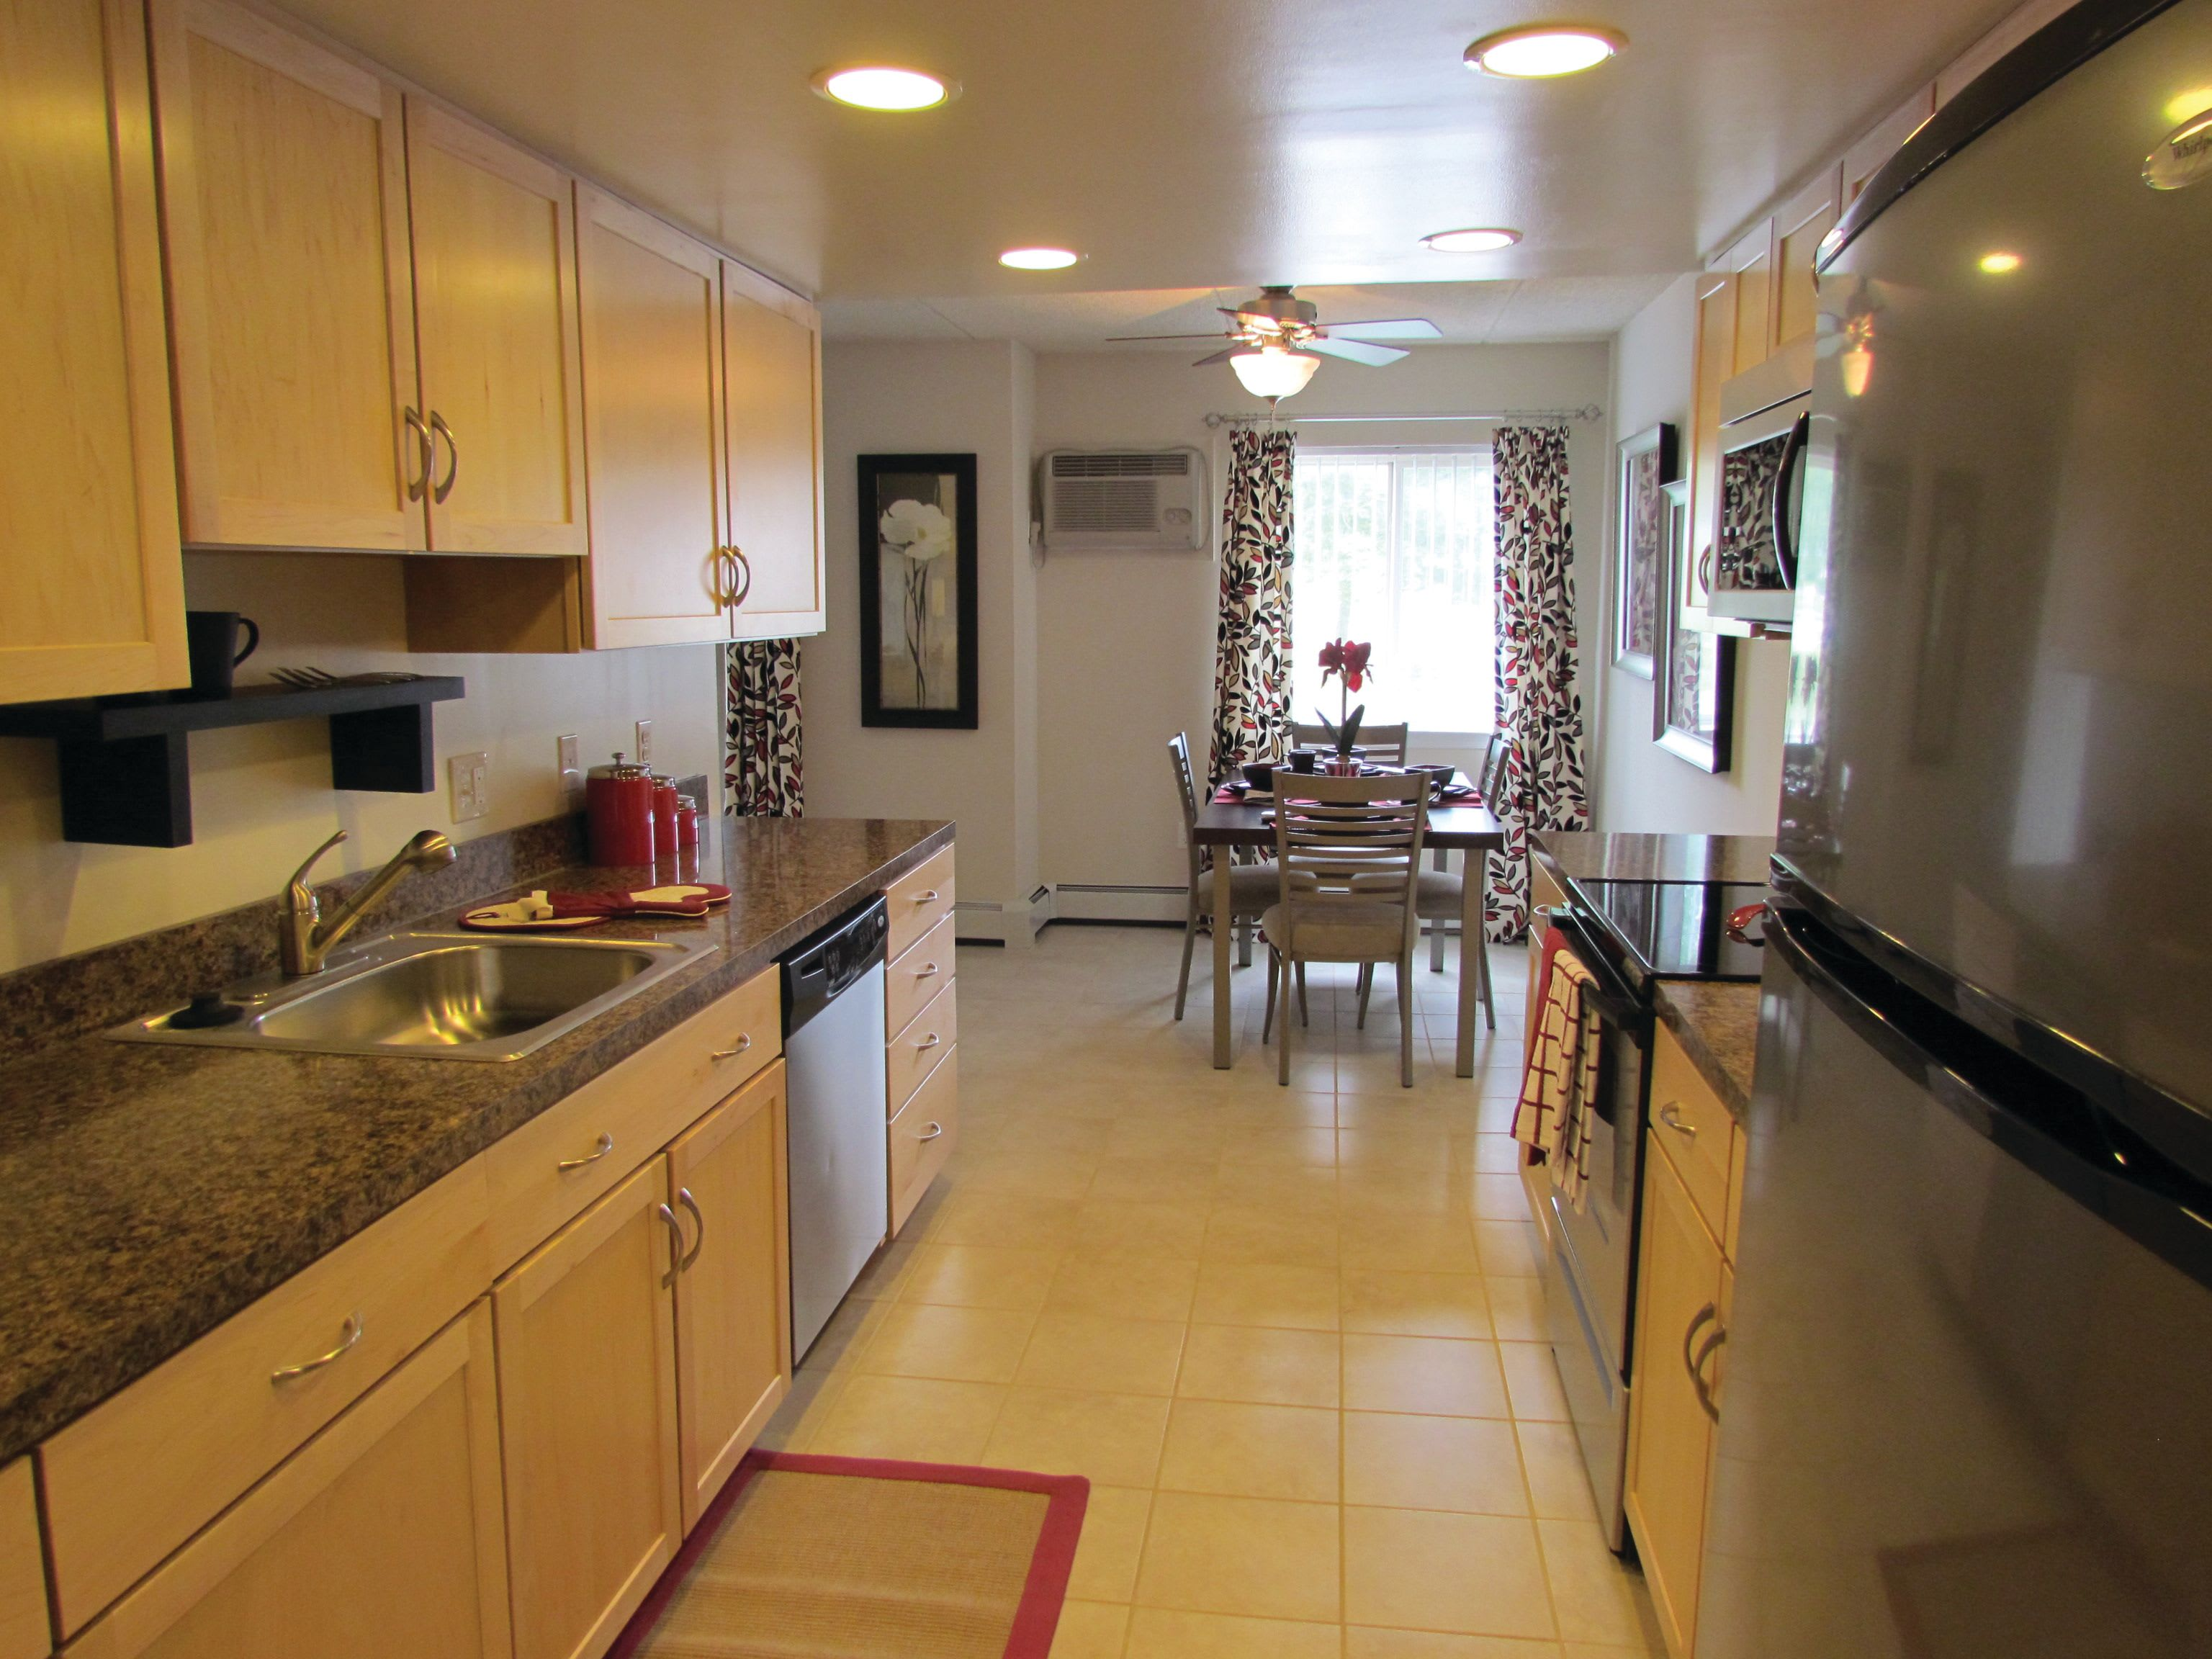 Kitchen featuring tons of countertop space and stainless steel appliances at Frazer Crossing in Malvern, Pennsylvania